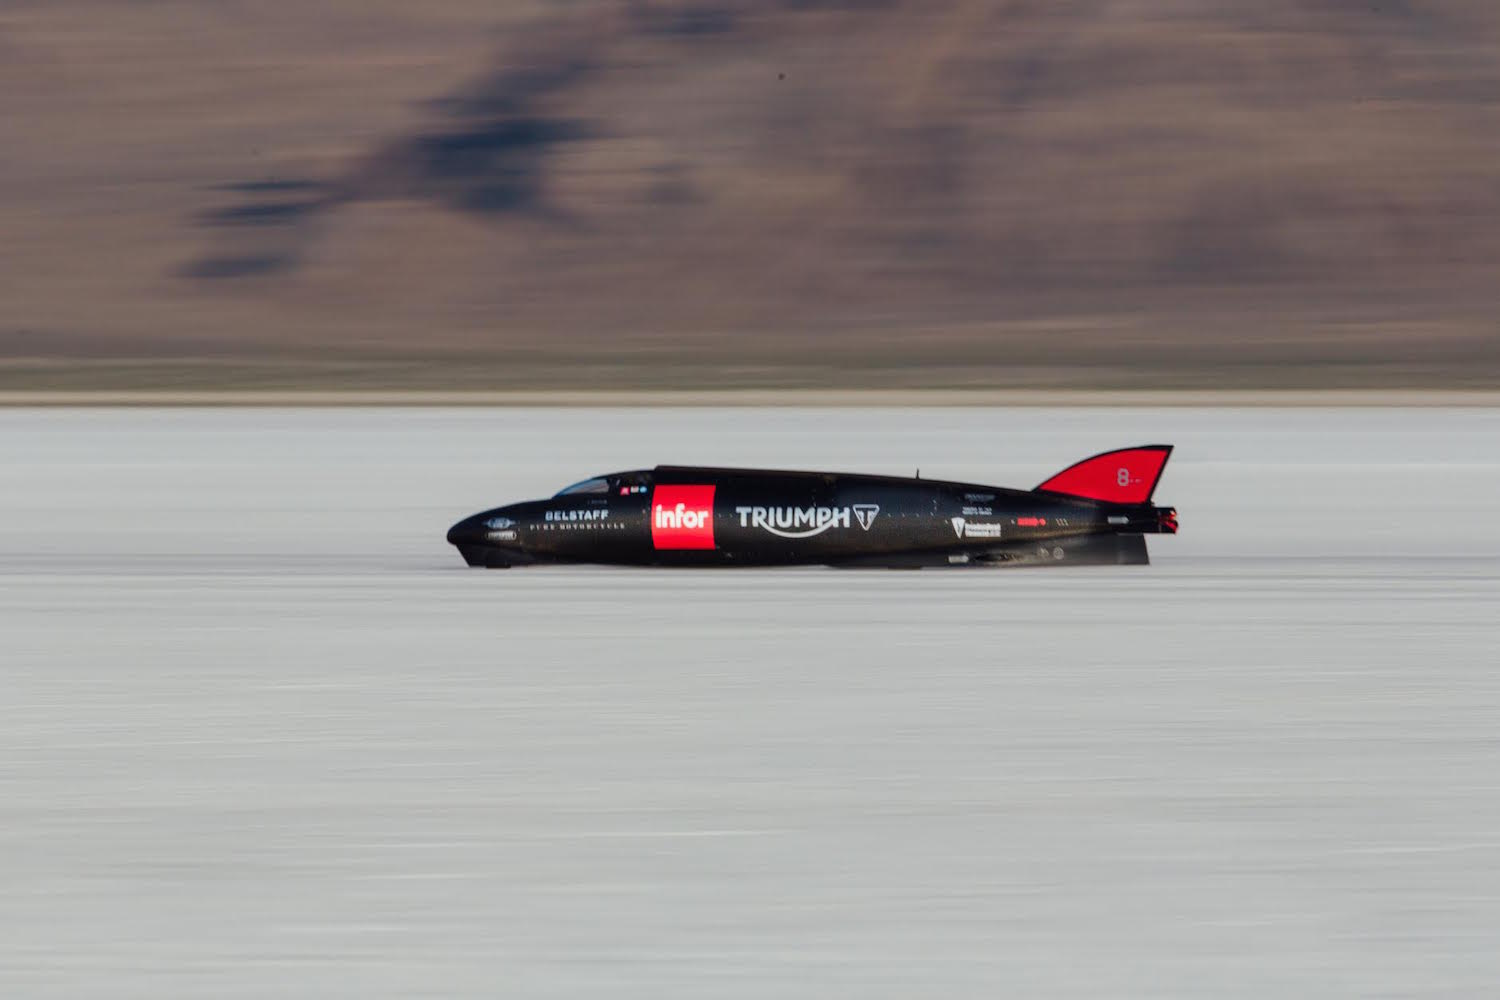 Speed Test Frontier >> Guy Martin breaks Triumph land speed record by going 274.2 mph in Rocket Streamliner